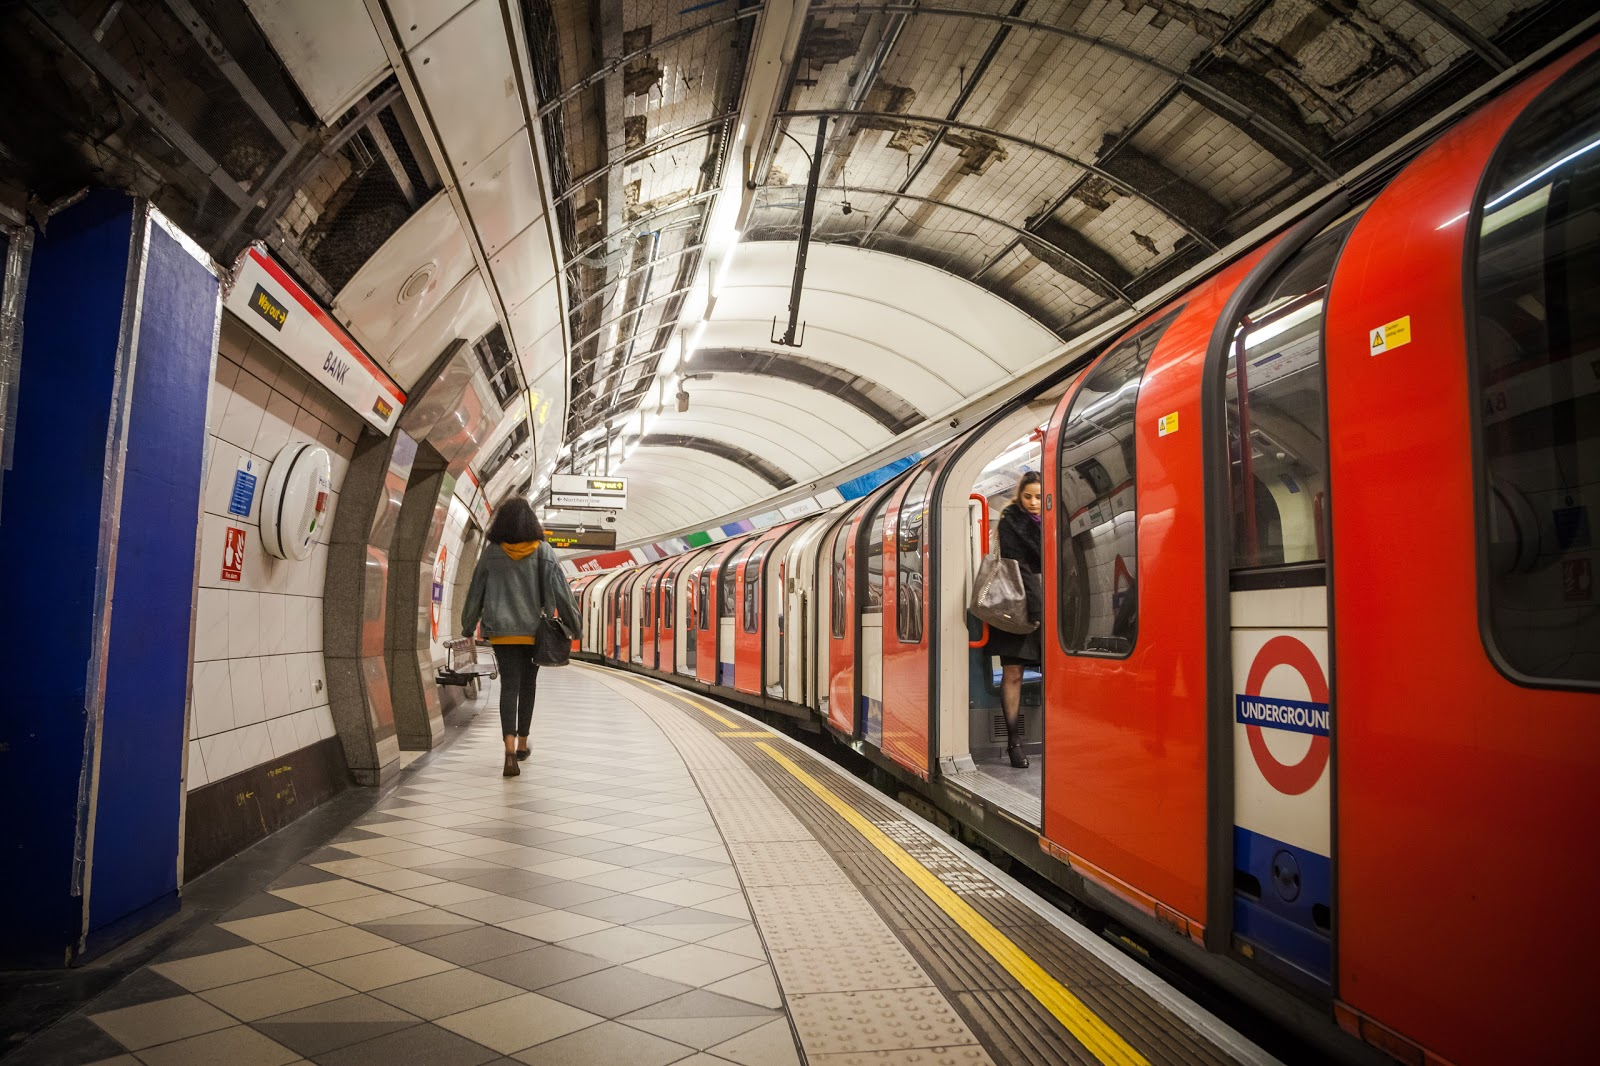 London Tube - The Oldest Subway in the World - Explore the World with Simon Sulyma